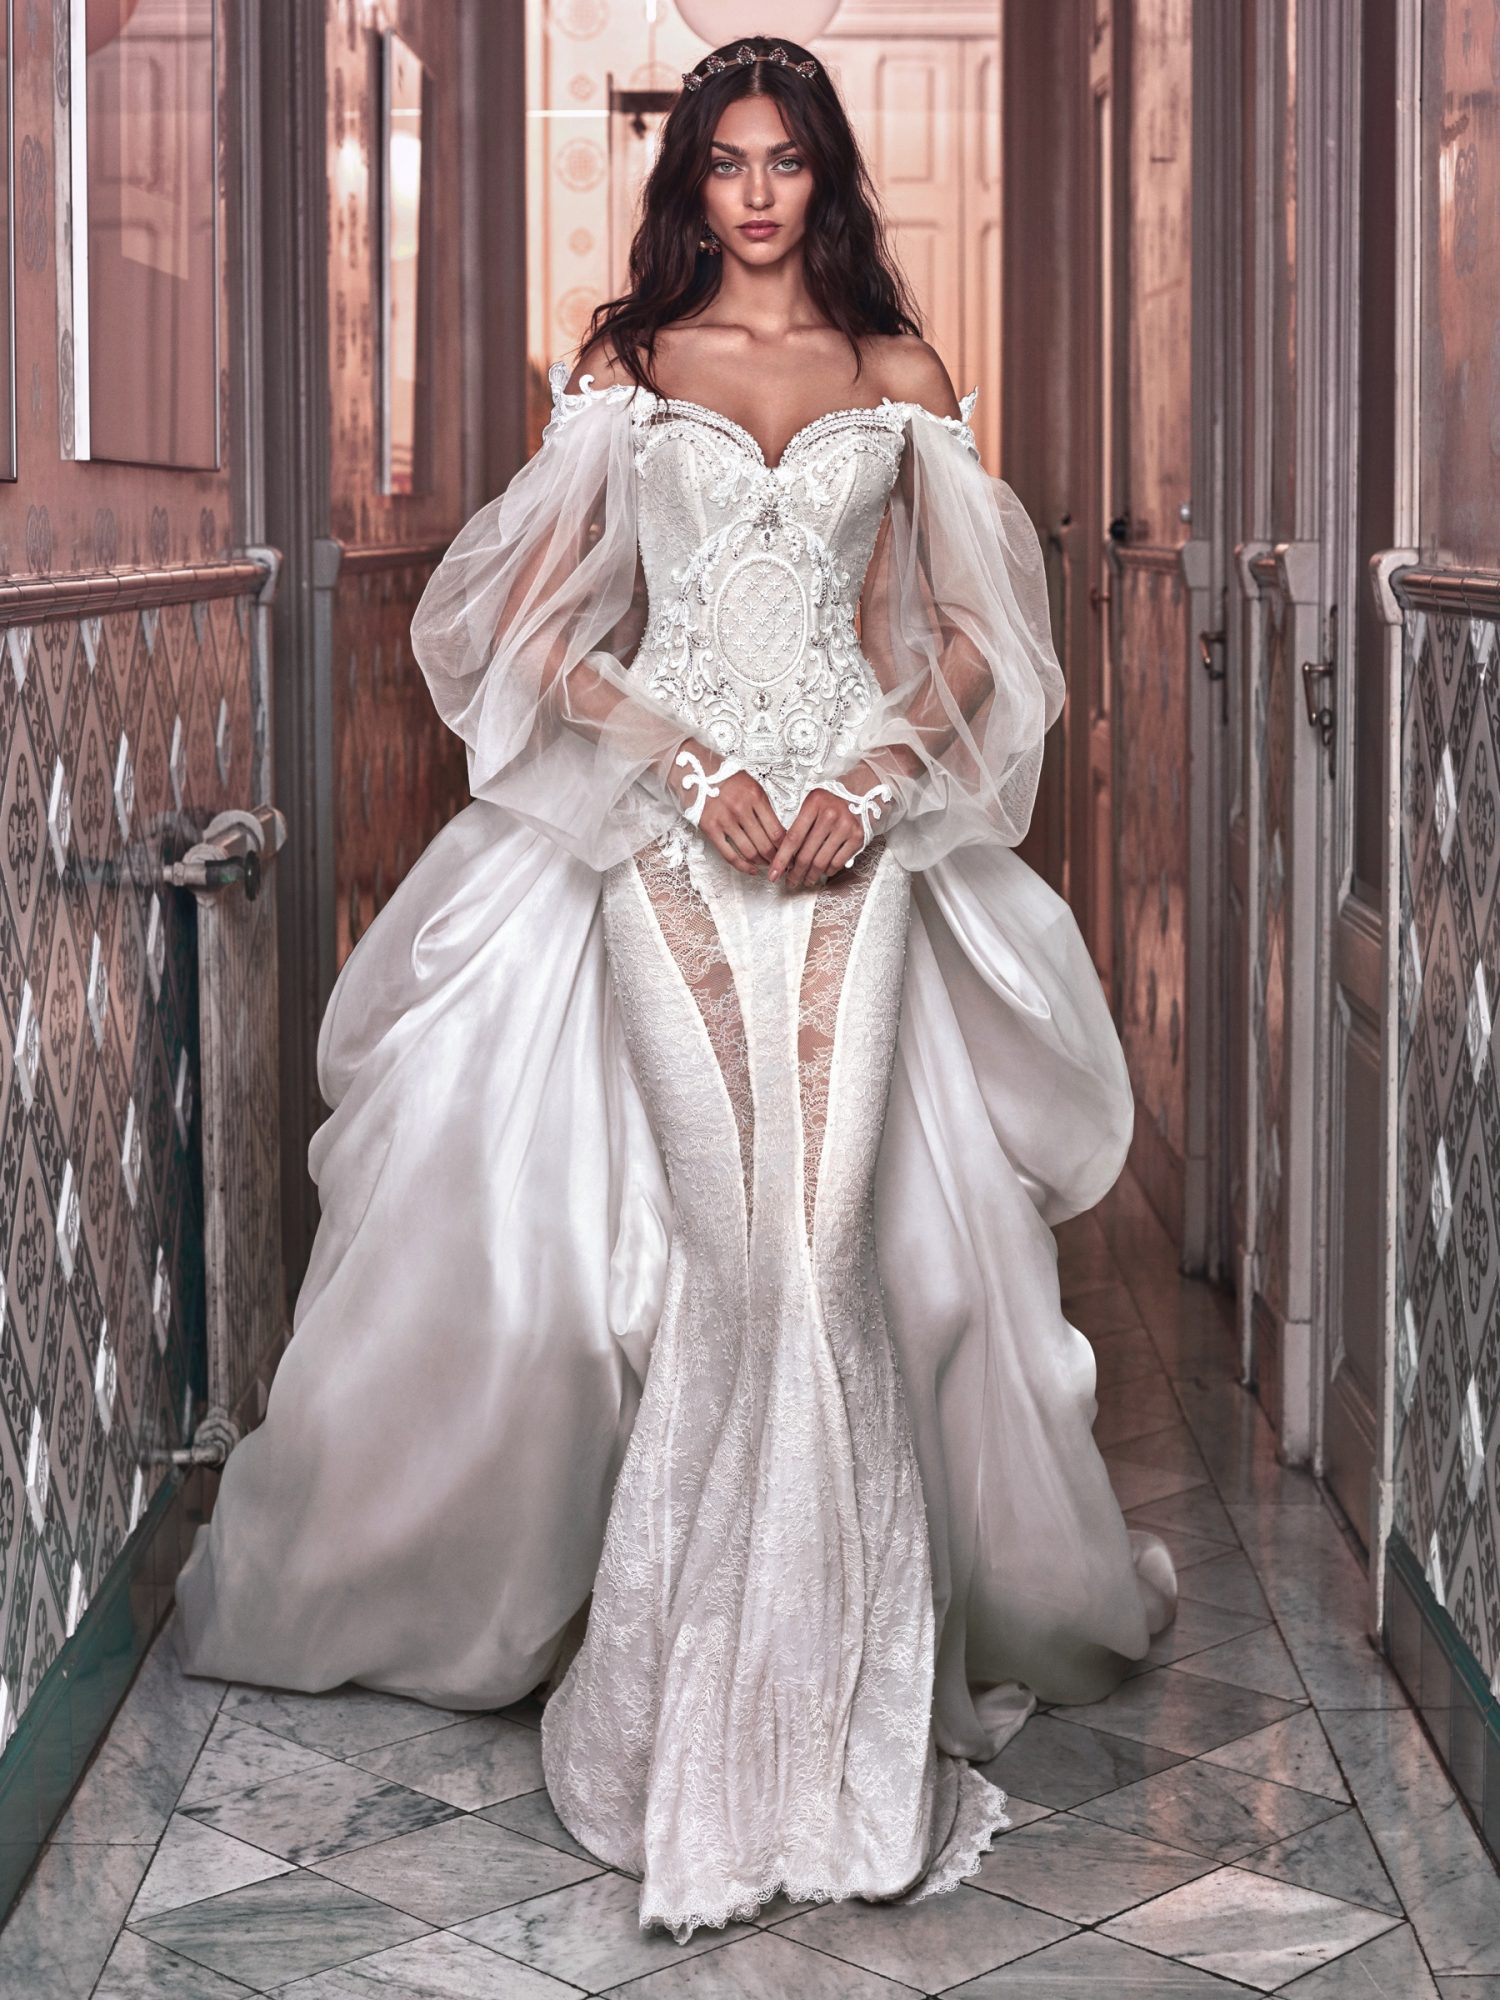 Beyoncs Vow Renewal Wedding Dress Inspired By Queen Victoria